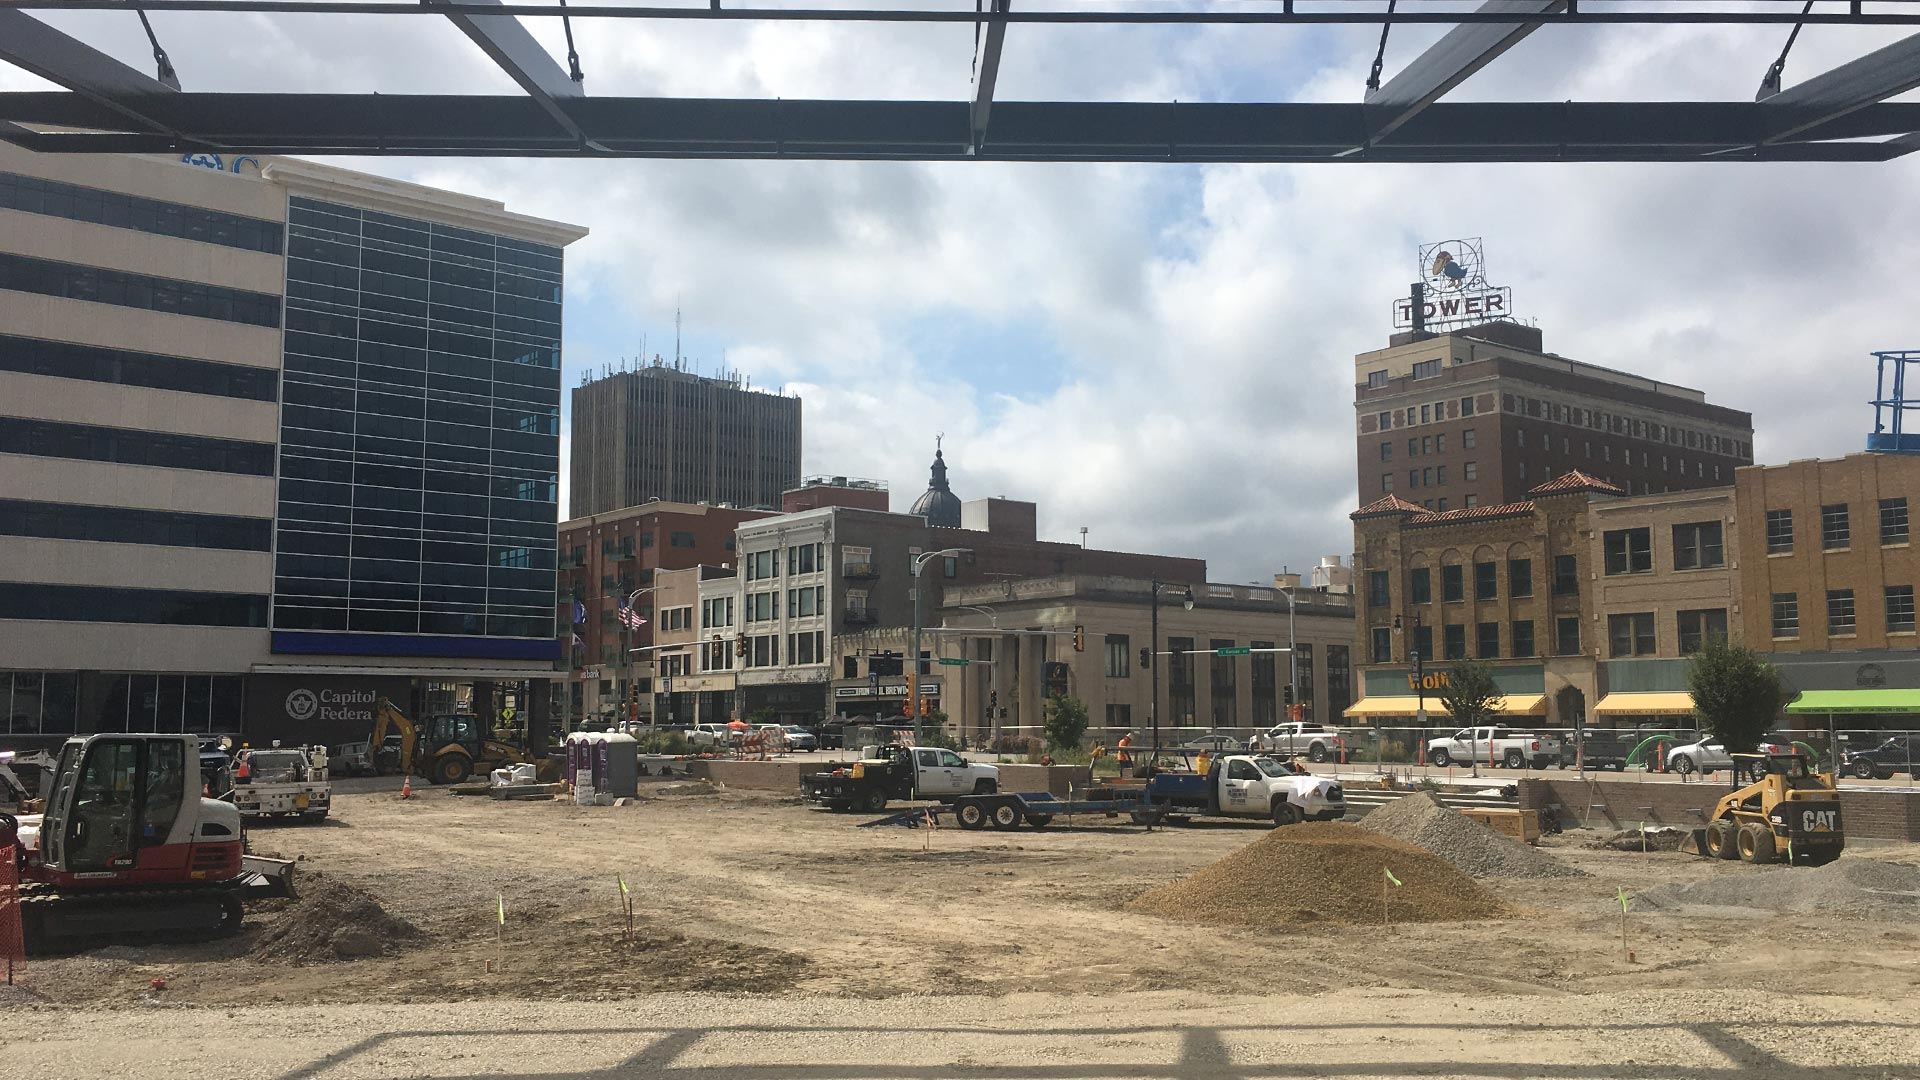 SBB Engineering Downtown Plaza Featured Project Image 3